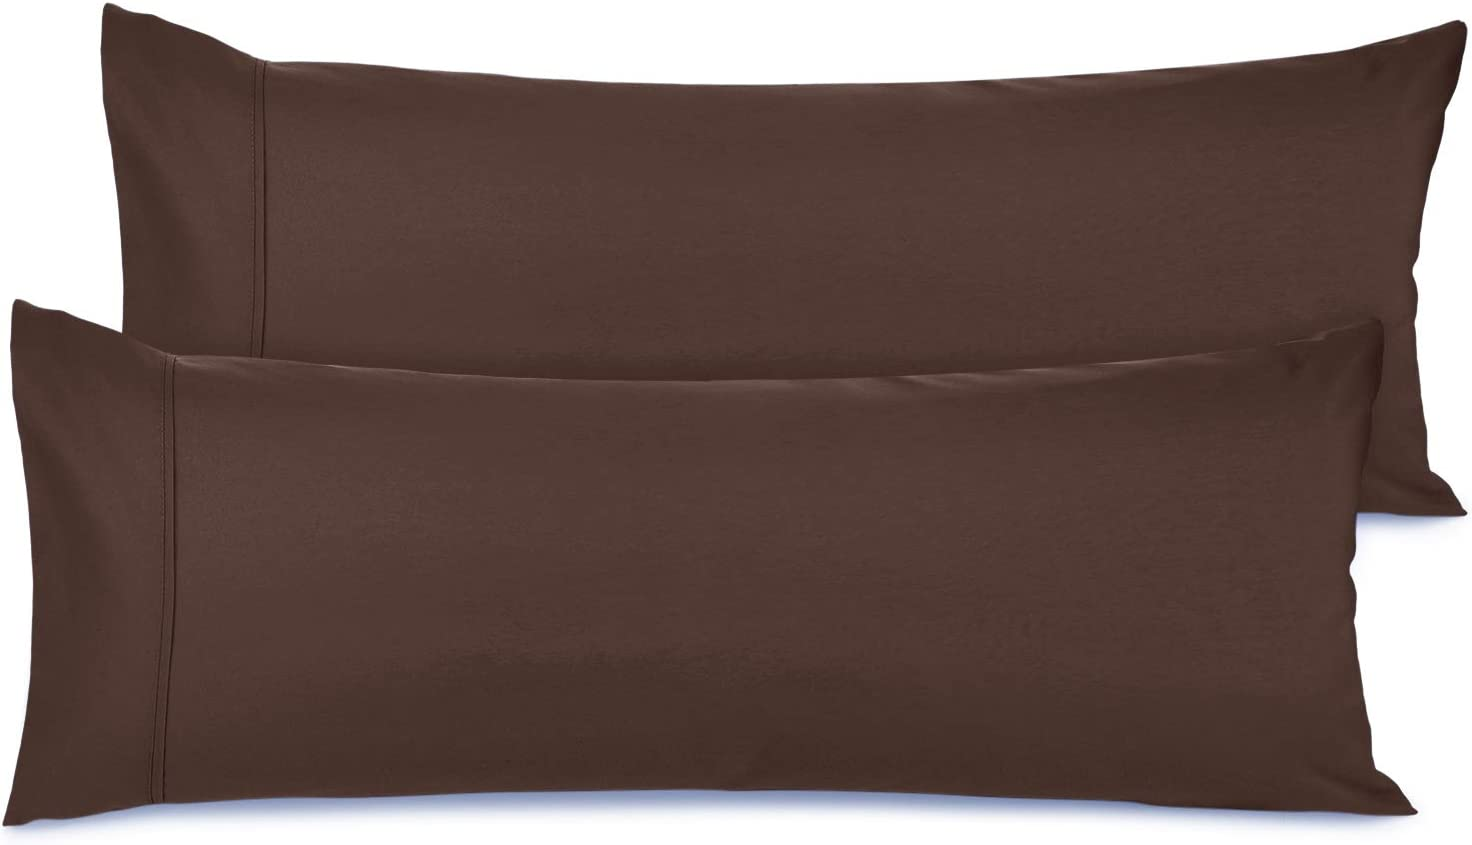 """Nestl Bedding Body Pillow Case Set of 2 - Double Brushed Microfiber Hypoallergenic Pillow Covers - 1800 Series Premium Bed Pillow Cases, 20""""x54"""" - Brown"""